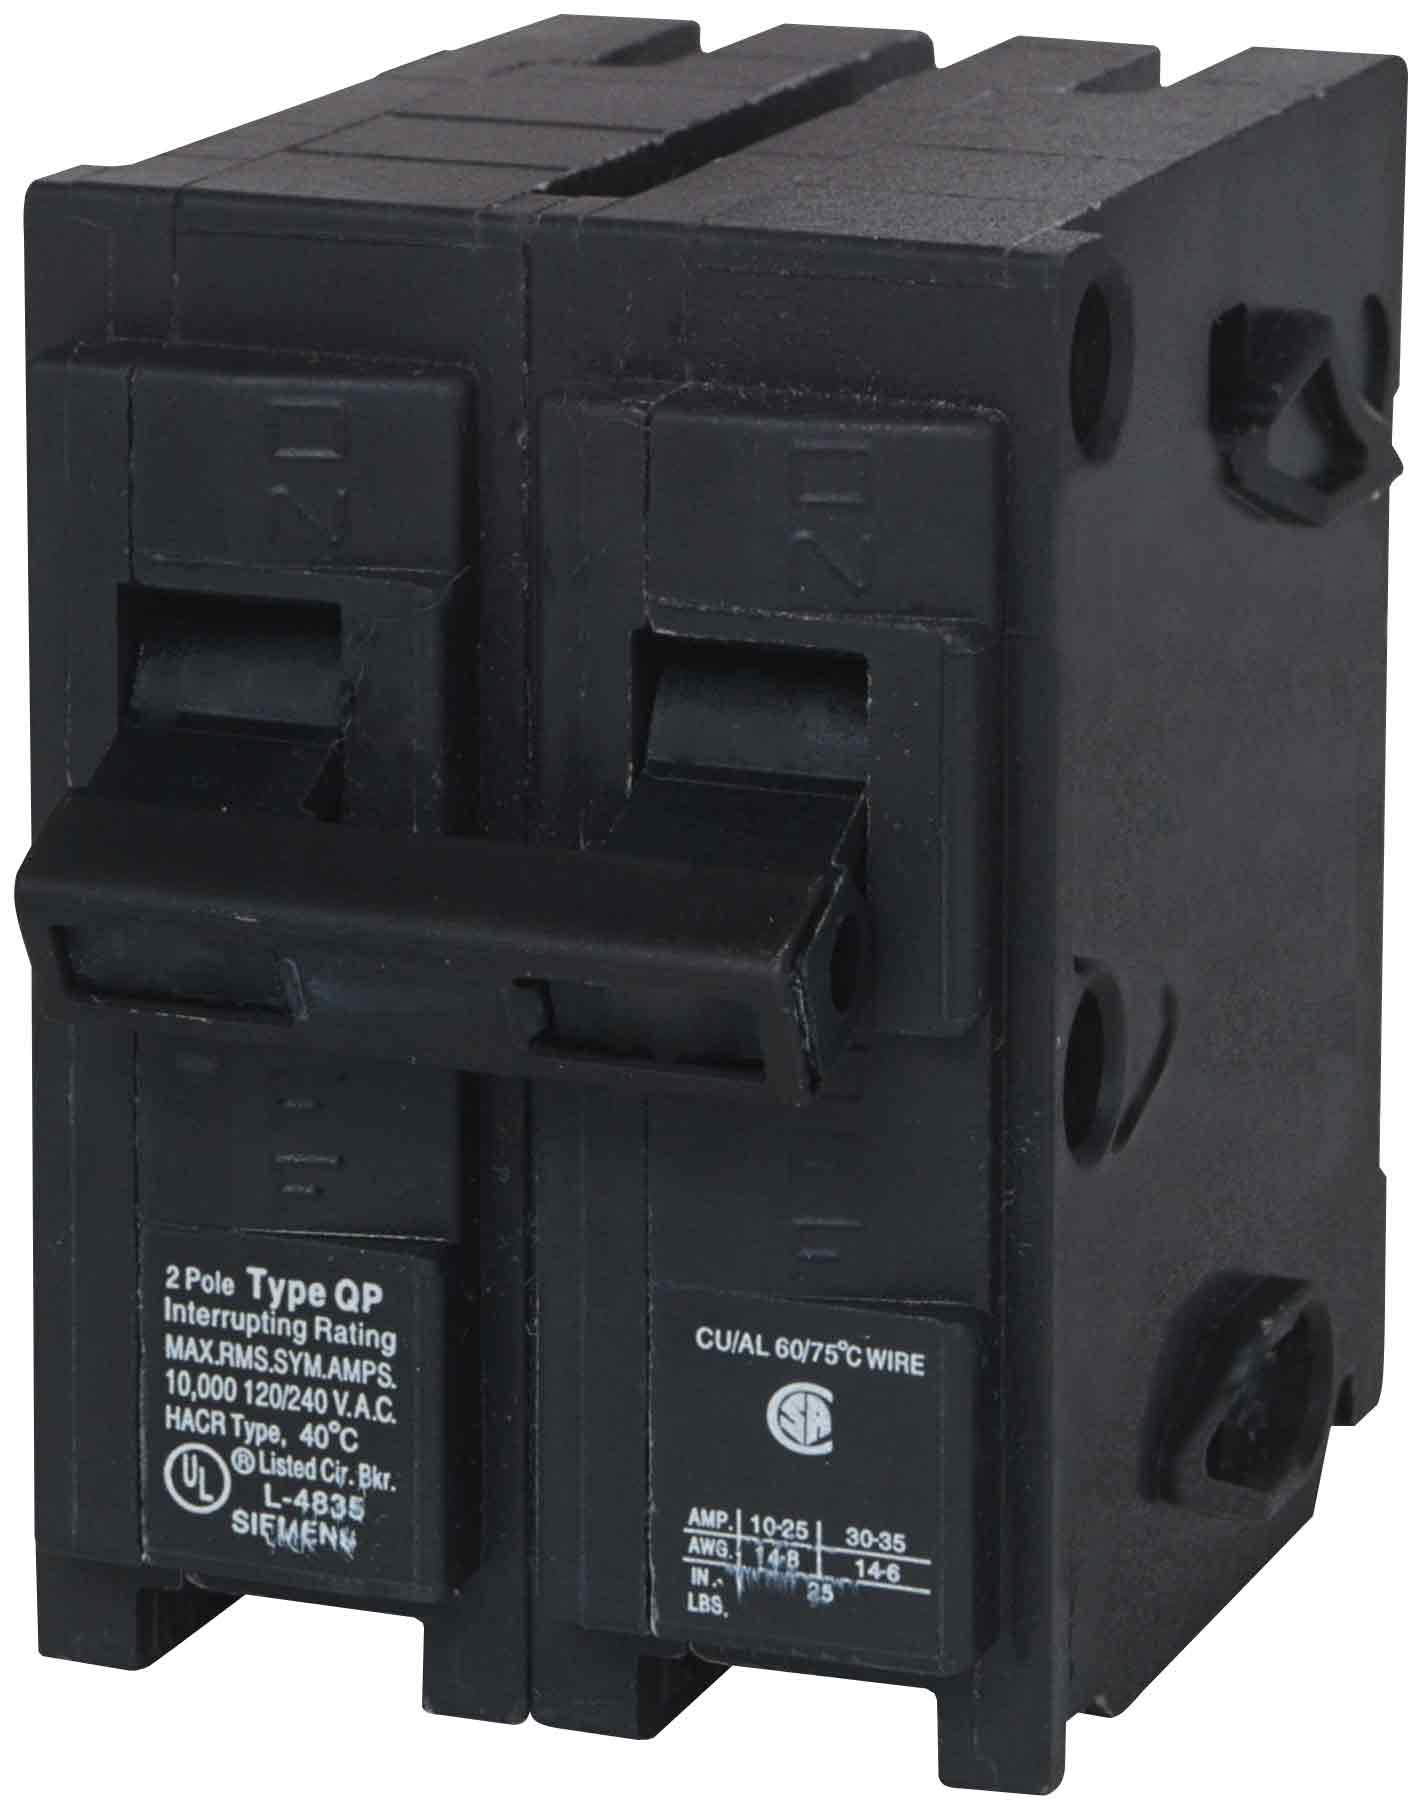 Murray MP230ST 120/240-Volt type MP-T 30-Amp Circuit Breaker with 120-Volt Shunt Trip Double pole